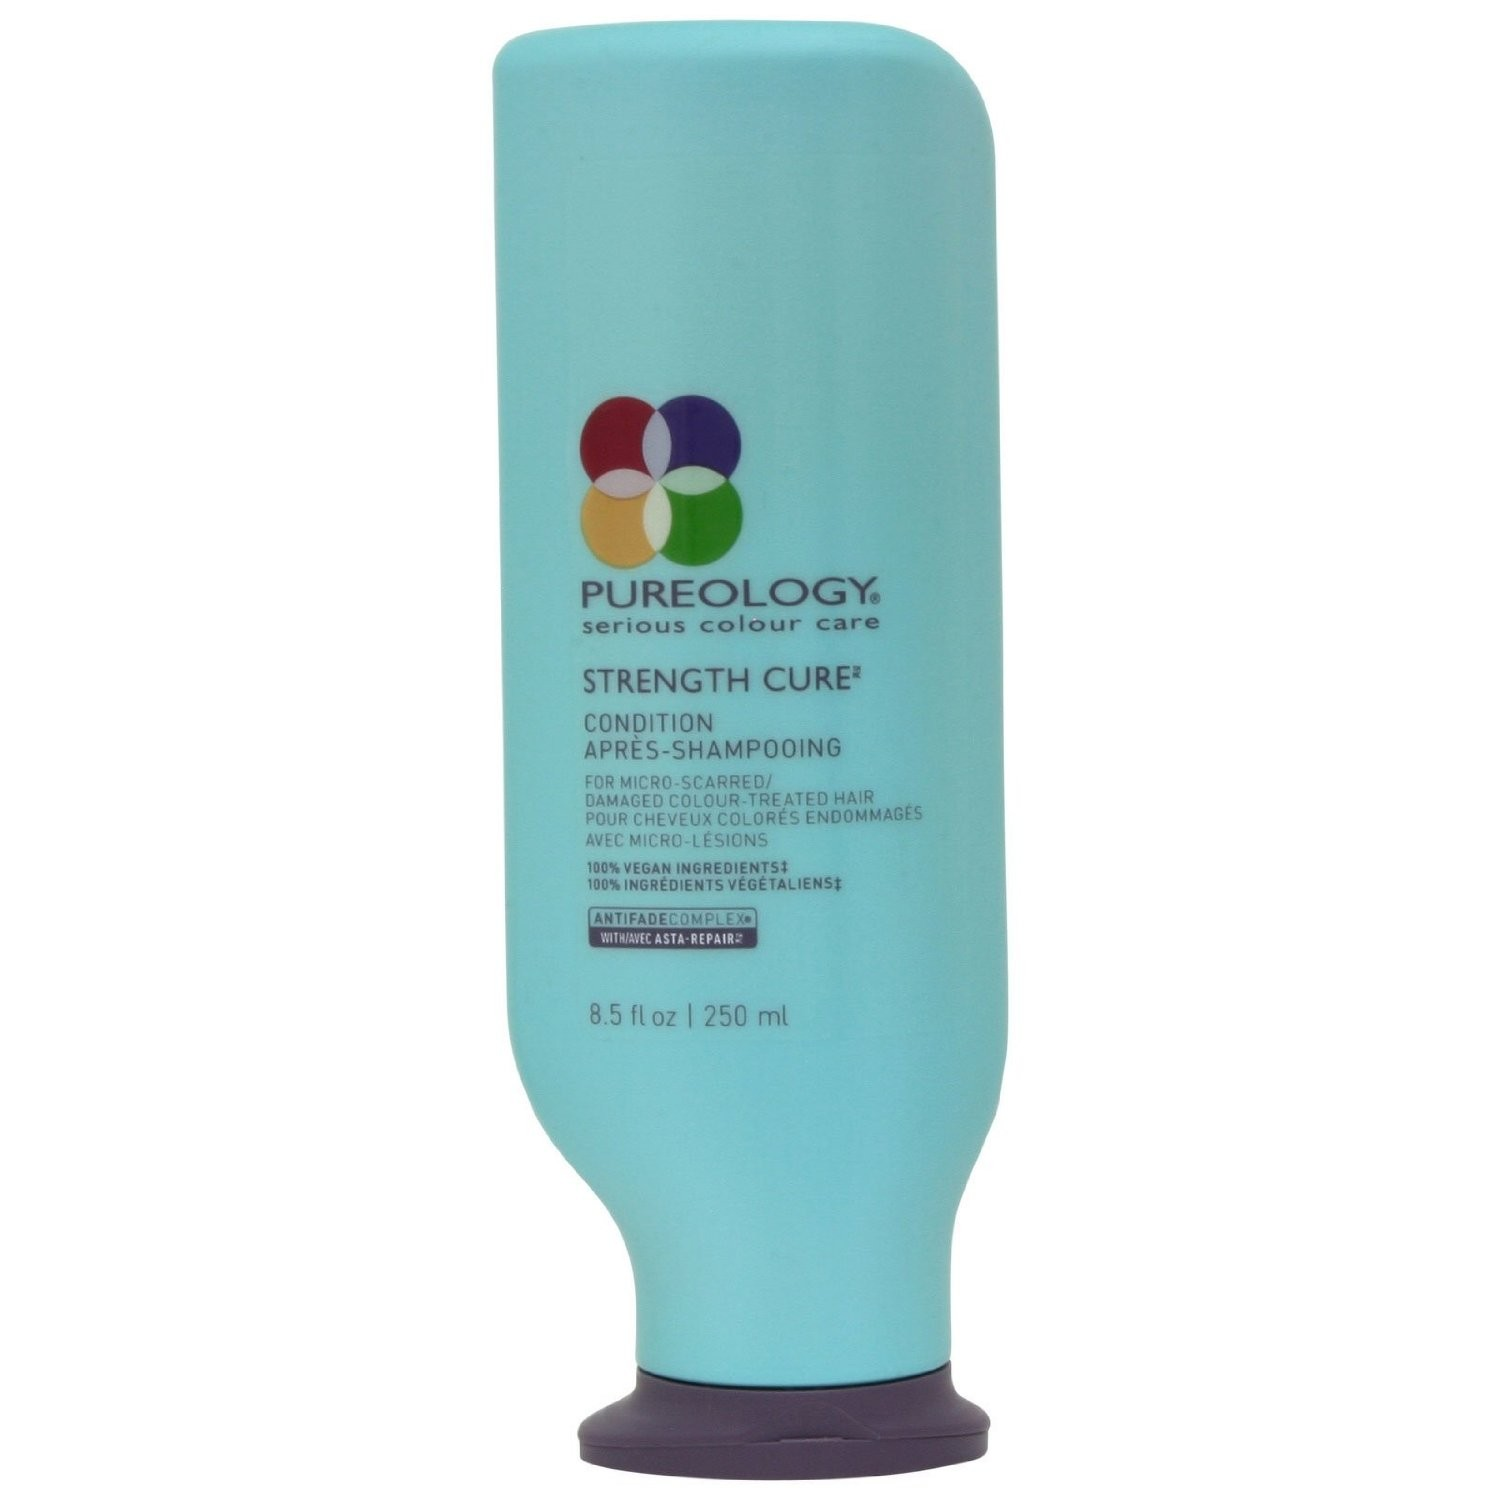 Pureology Strength Cure Condition